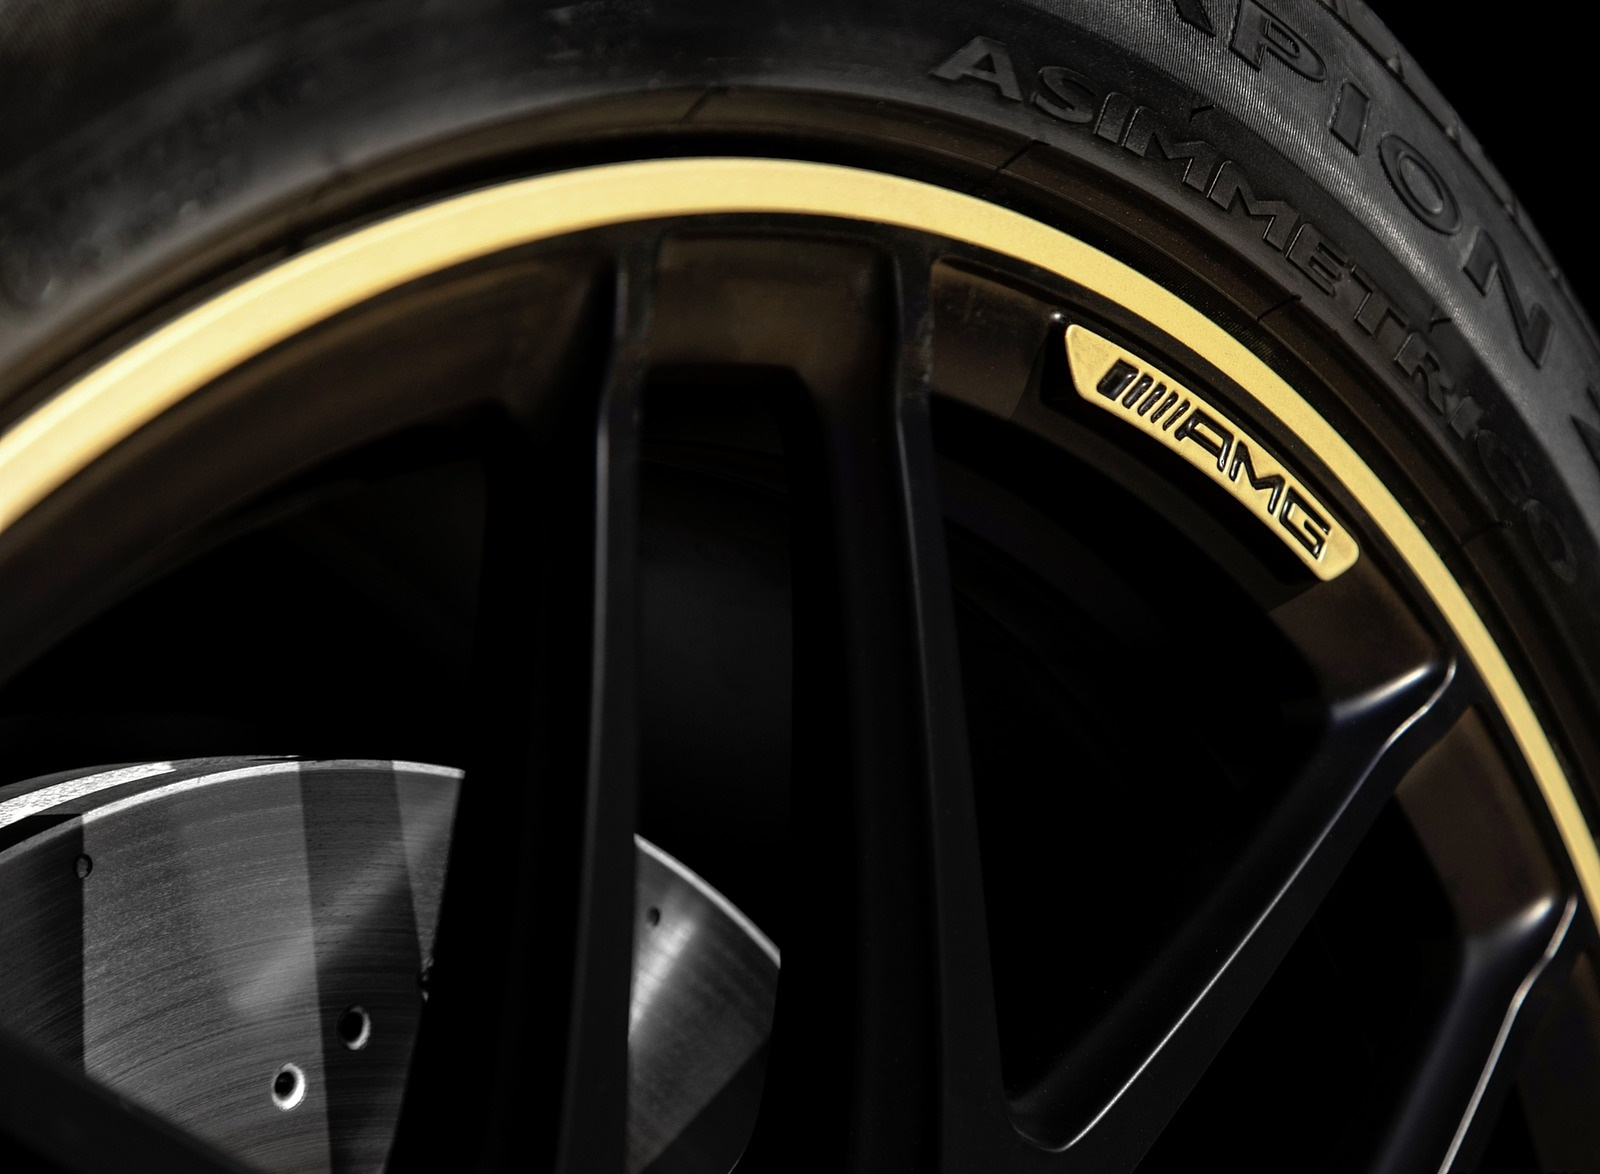 2020 Mercedes-AMG G 63 Cigarette Edition Wheel Wallpapers (7)